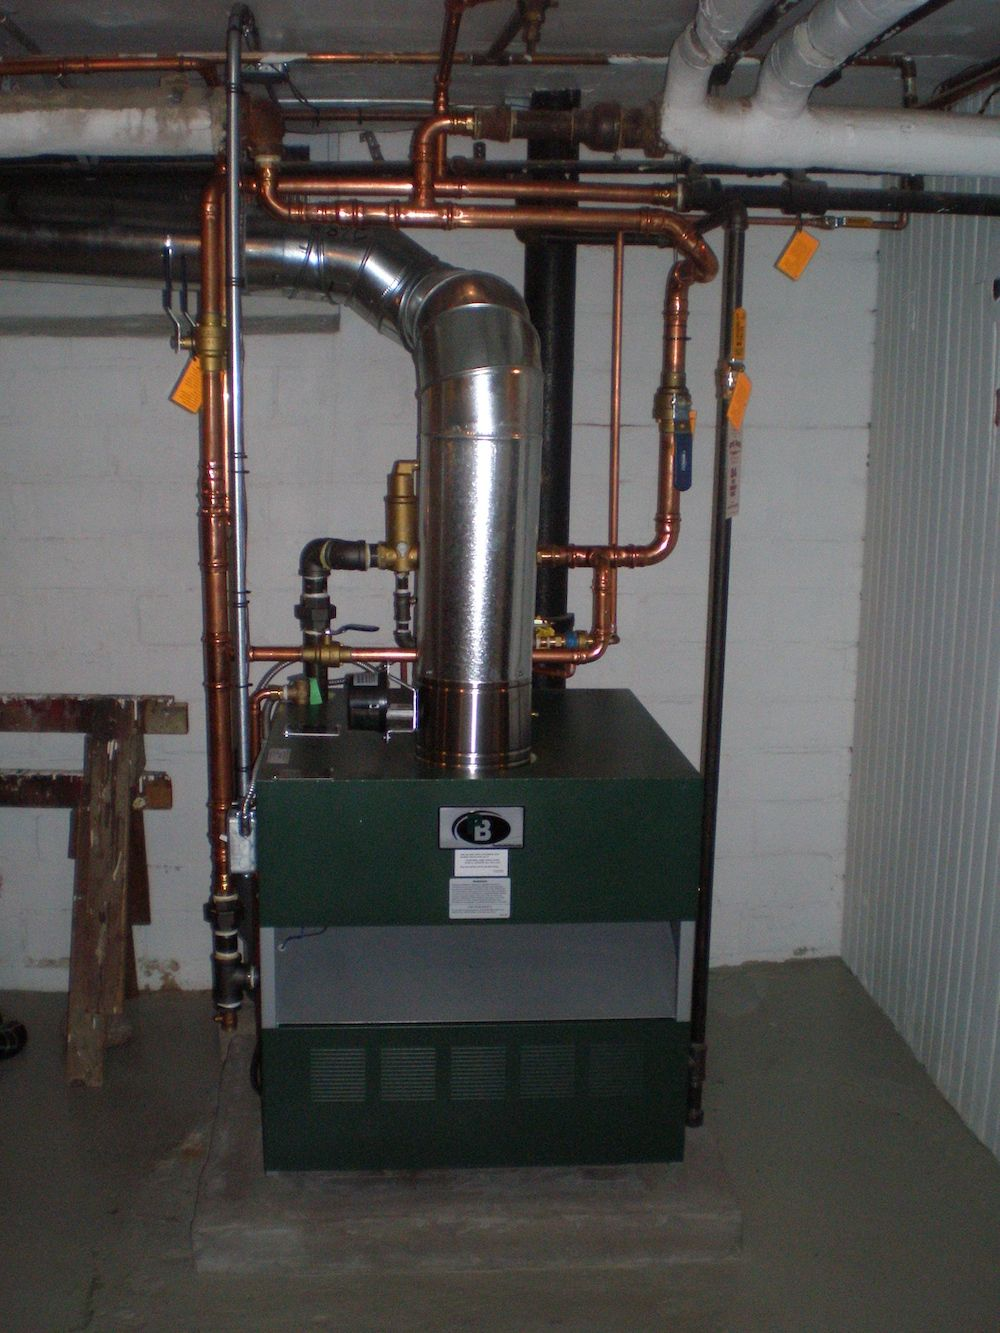 a boiler in a basement